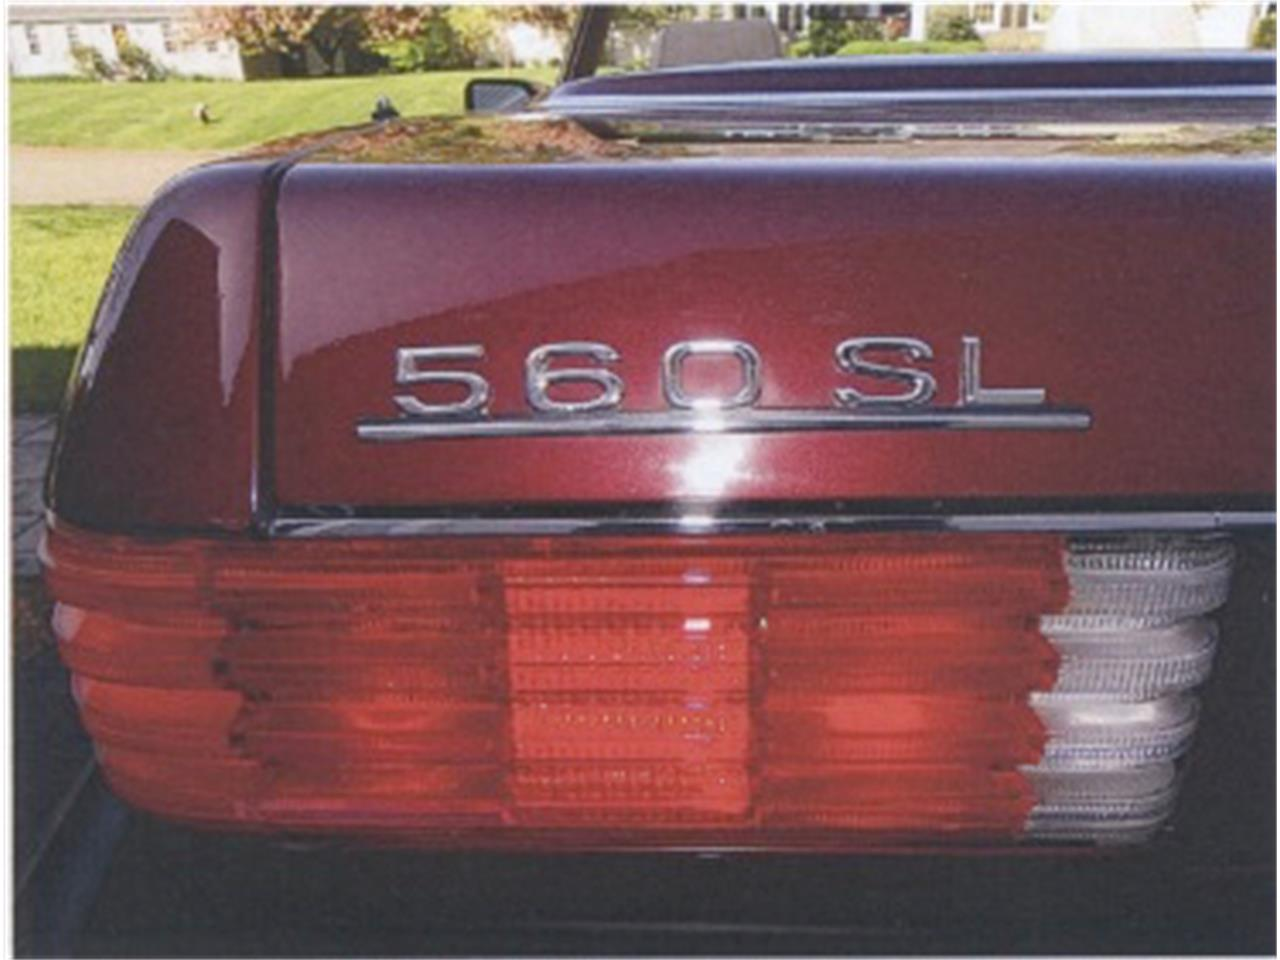 Large Picture of '88 Mercedes-Benz 560SL located in Newburyport Massachusetts - $12,500.00 Offered by a Private Seller - F12H